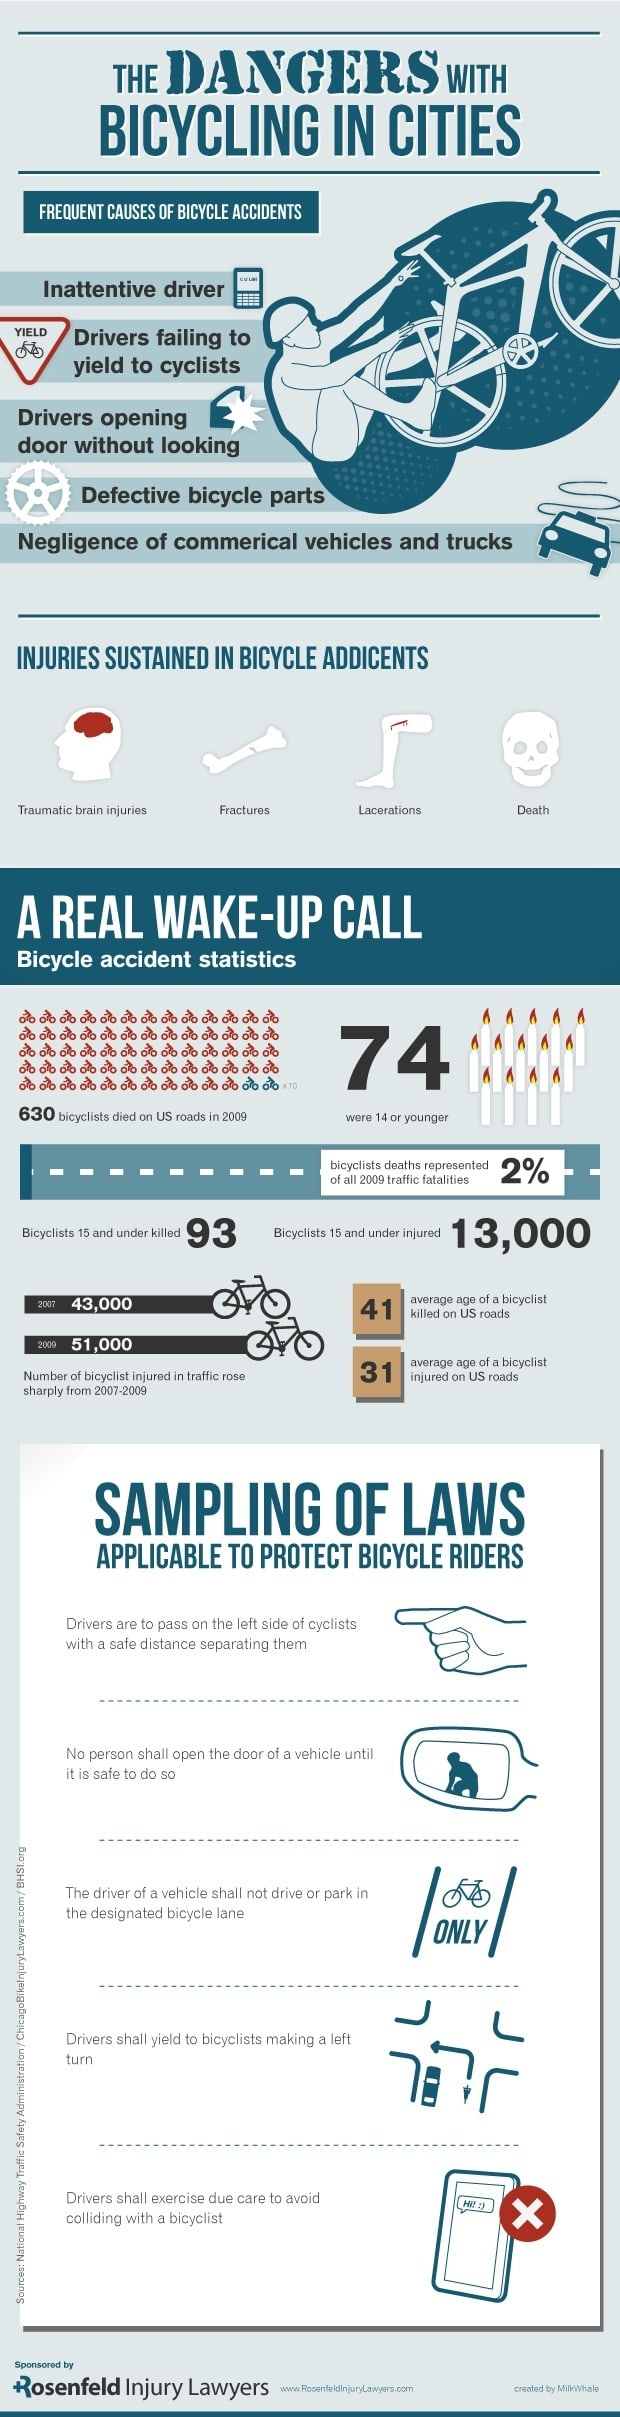 Road Safety Laws that Protect Cyclists - Infographic